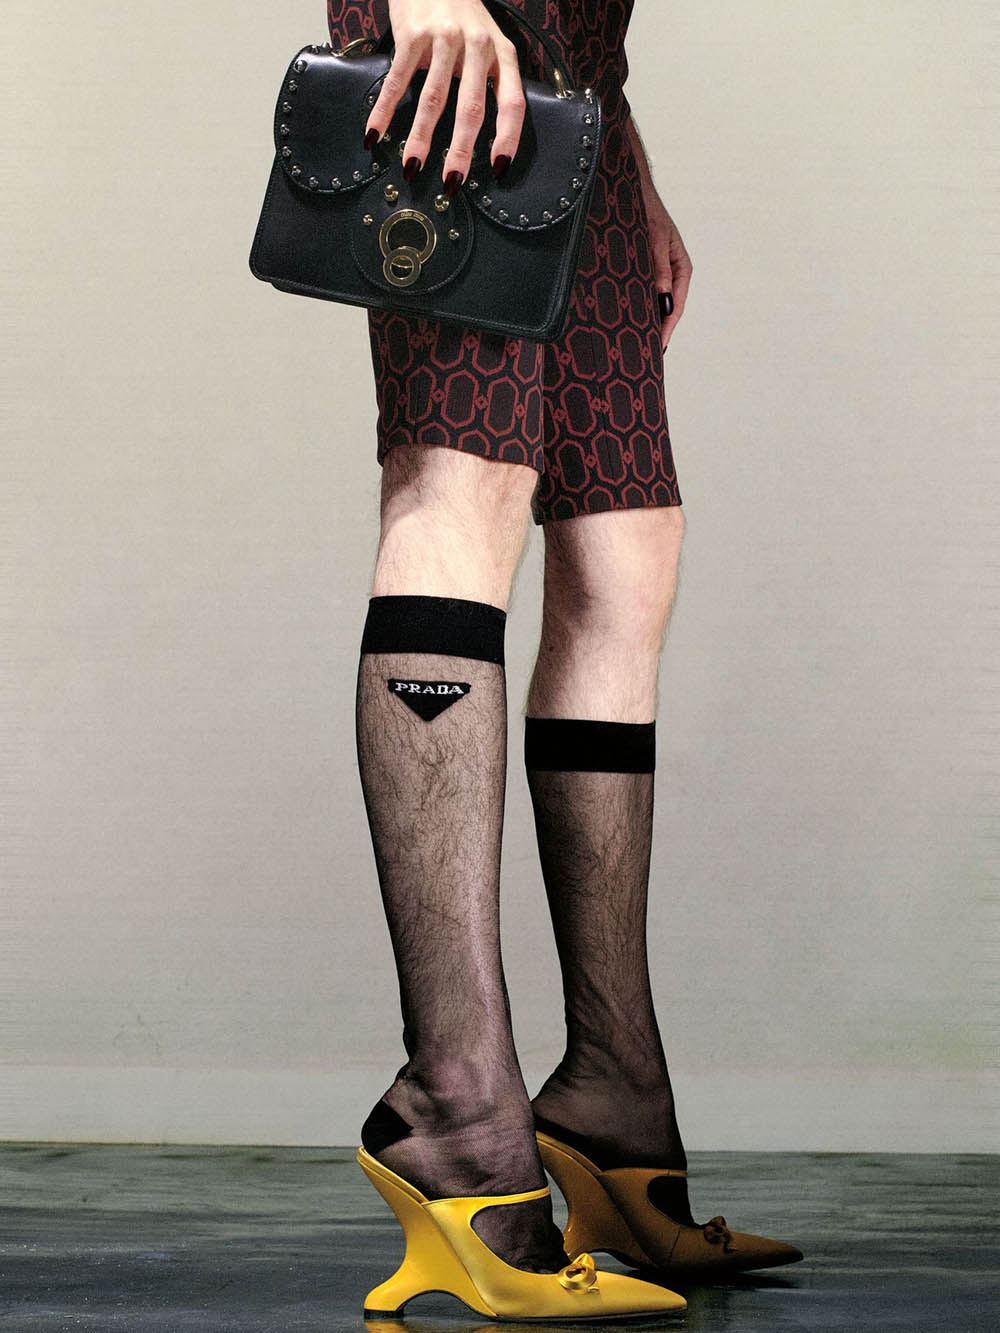 Deviating-From-Gender-by-Steven-Klein-for-CR-Fashion-Book-Issue- (8).jpg